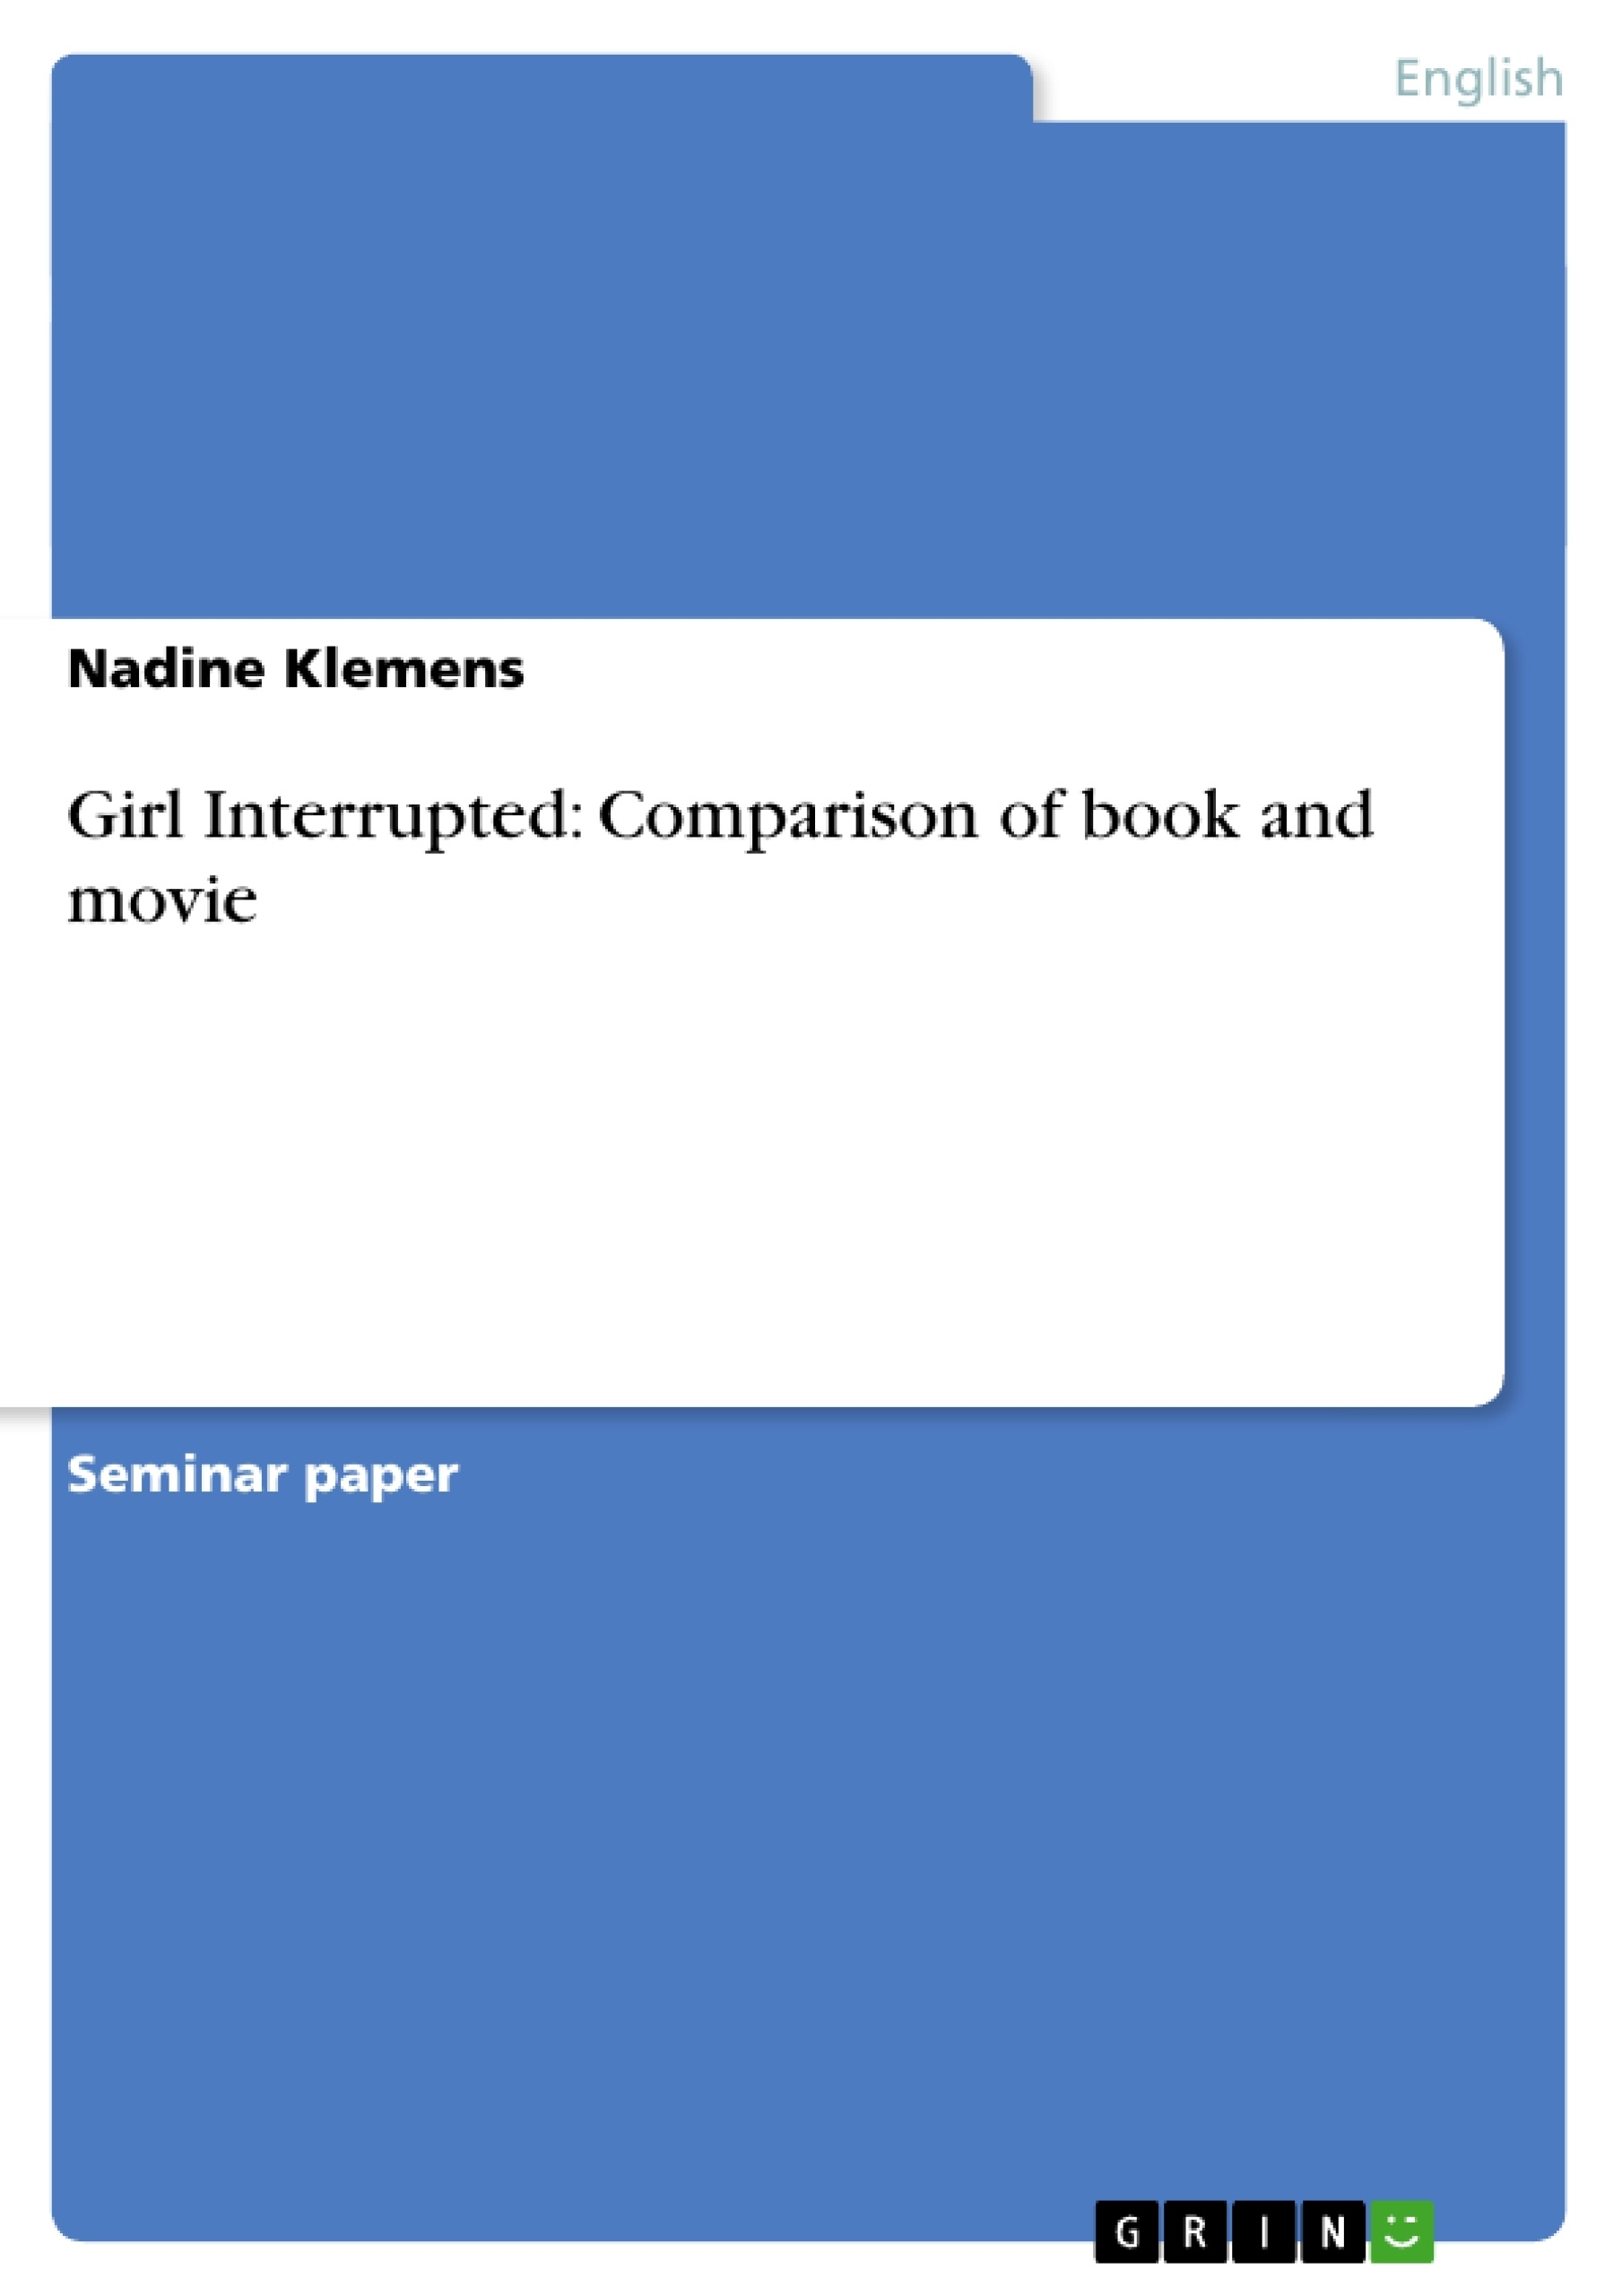 Title: Girl Interrupted: Comparison of book and movie